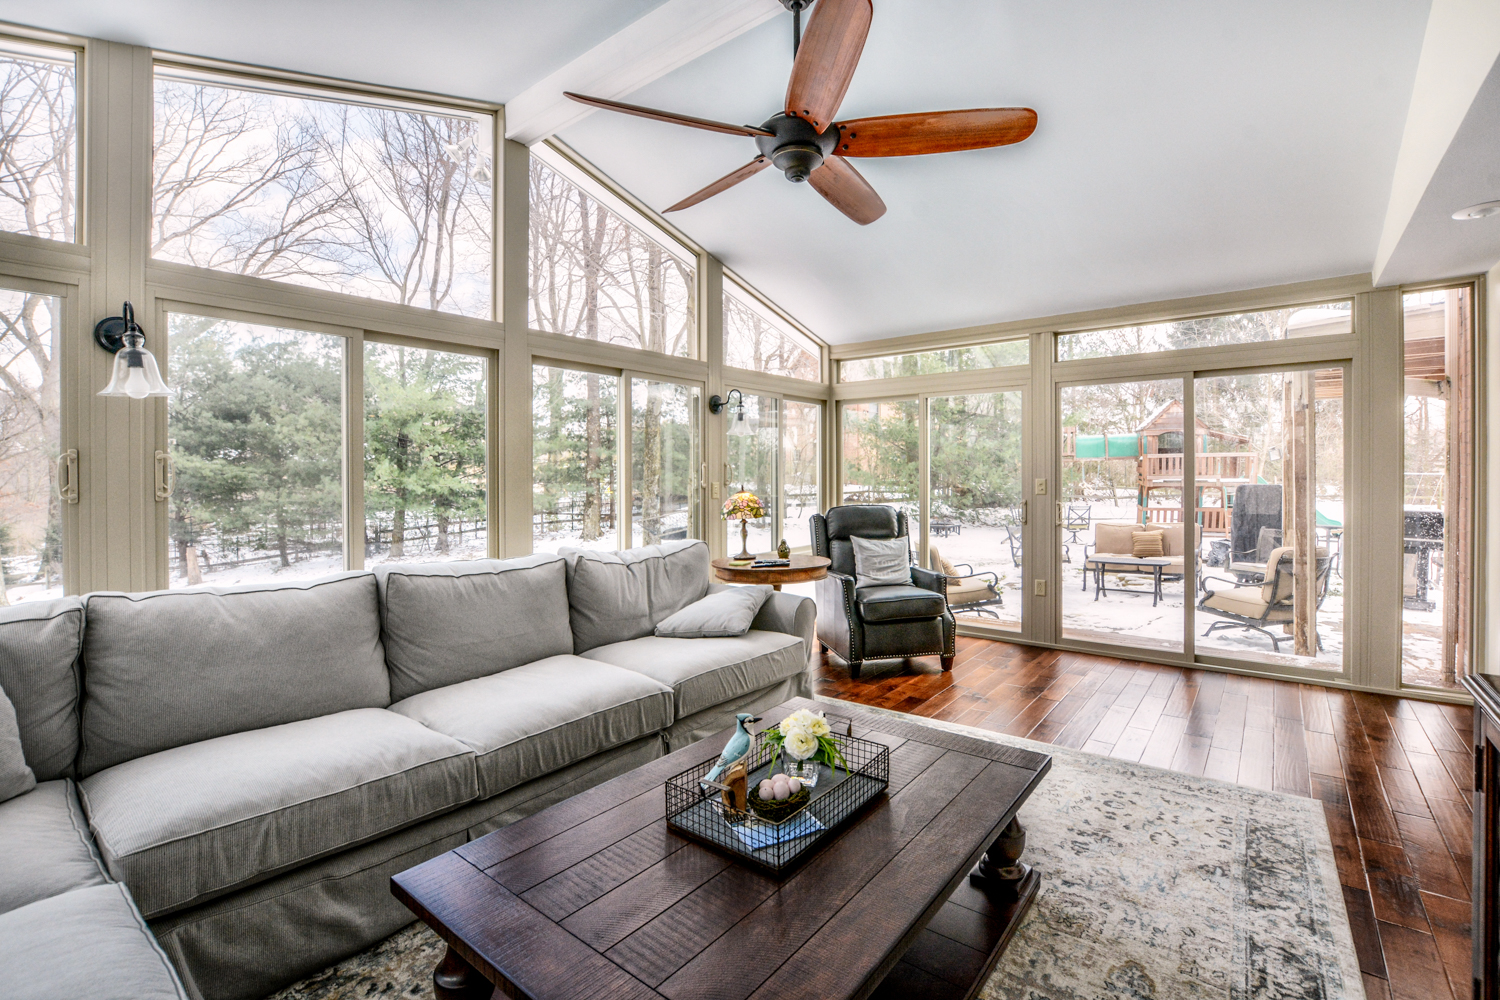 Interior View of All Season Sunroom